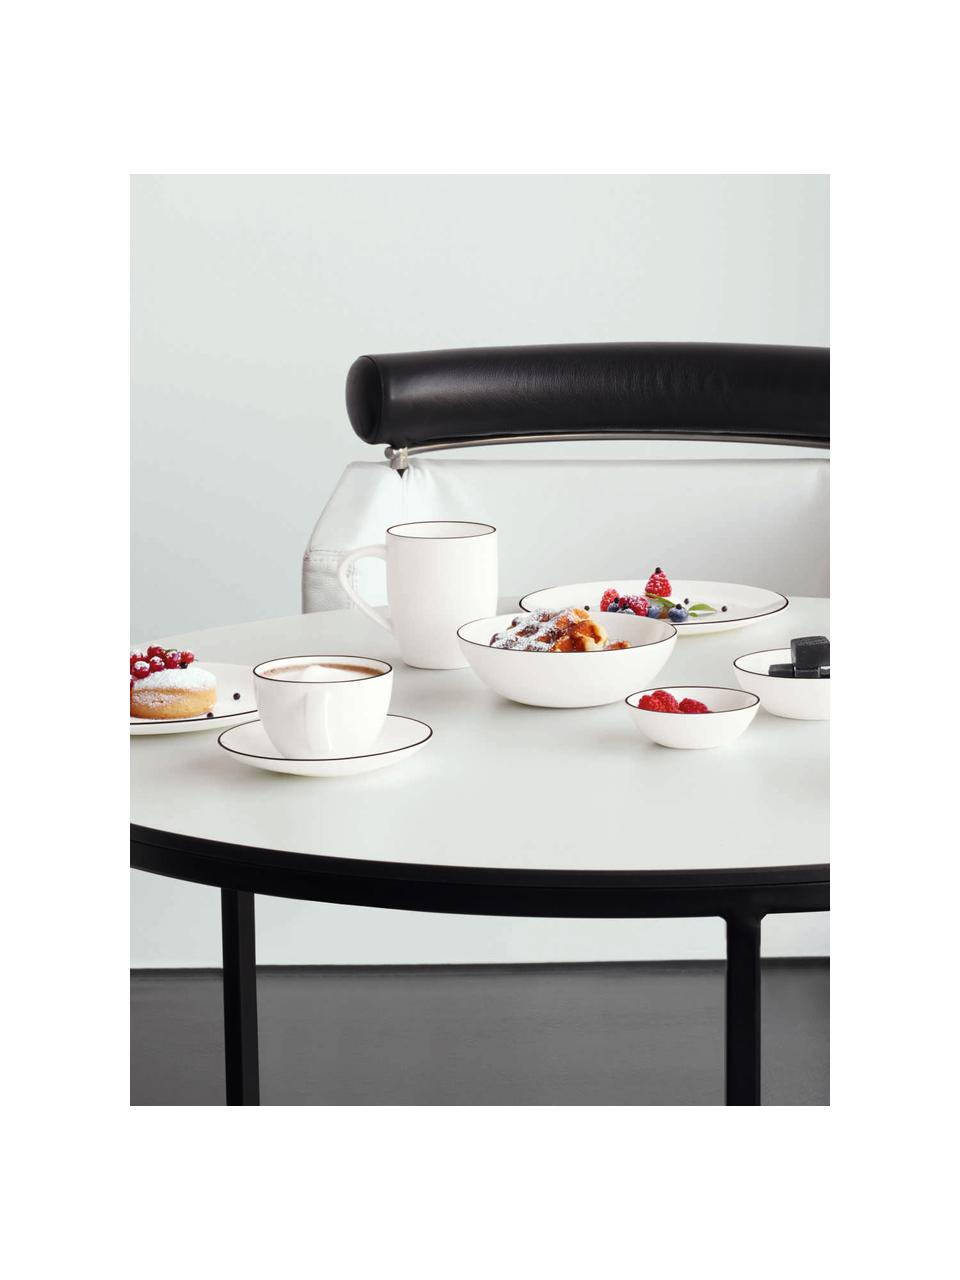 Piatto piano á table ligne noir 4 pz, Porcellana Fine Bone China Fine Bone China è una porcellana delicata che si distingue particolarmente per la sua lucentezza radiosa., Bianco Bordo: nero, Ø 27 cm